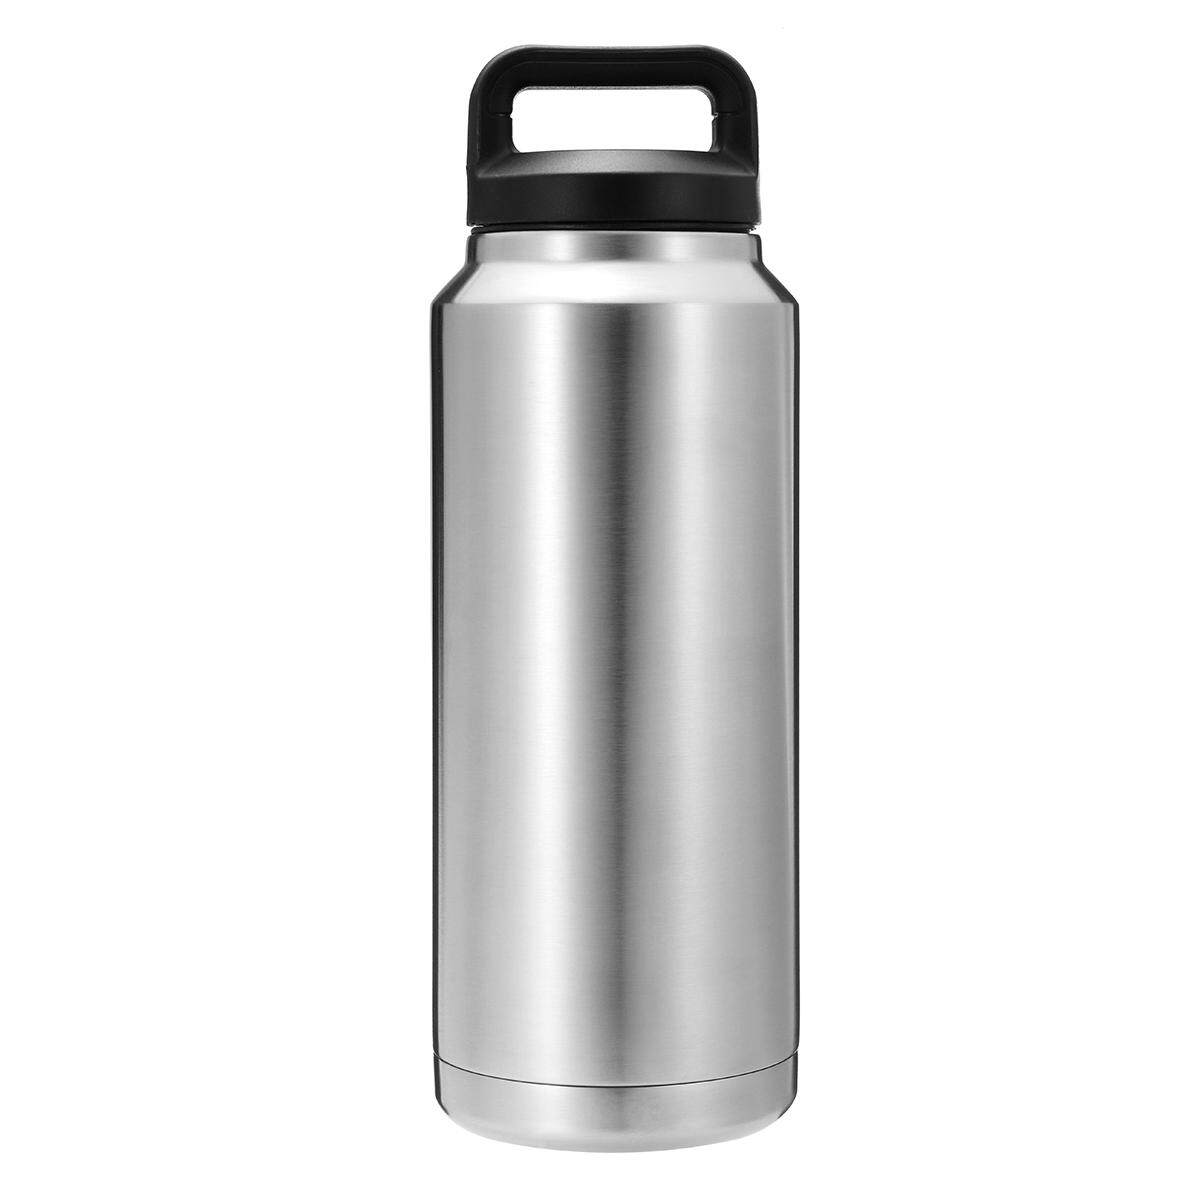 8oz/36oz/64oz Stainless Steel Vacuum Insulated Water Bottle Travel Thermos Cup 36oz By Warmroom.